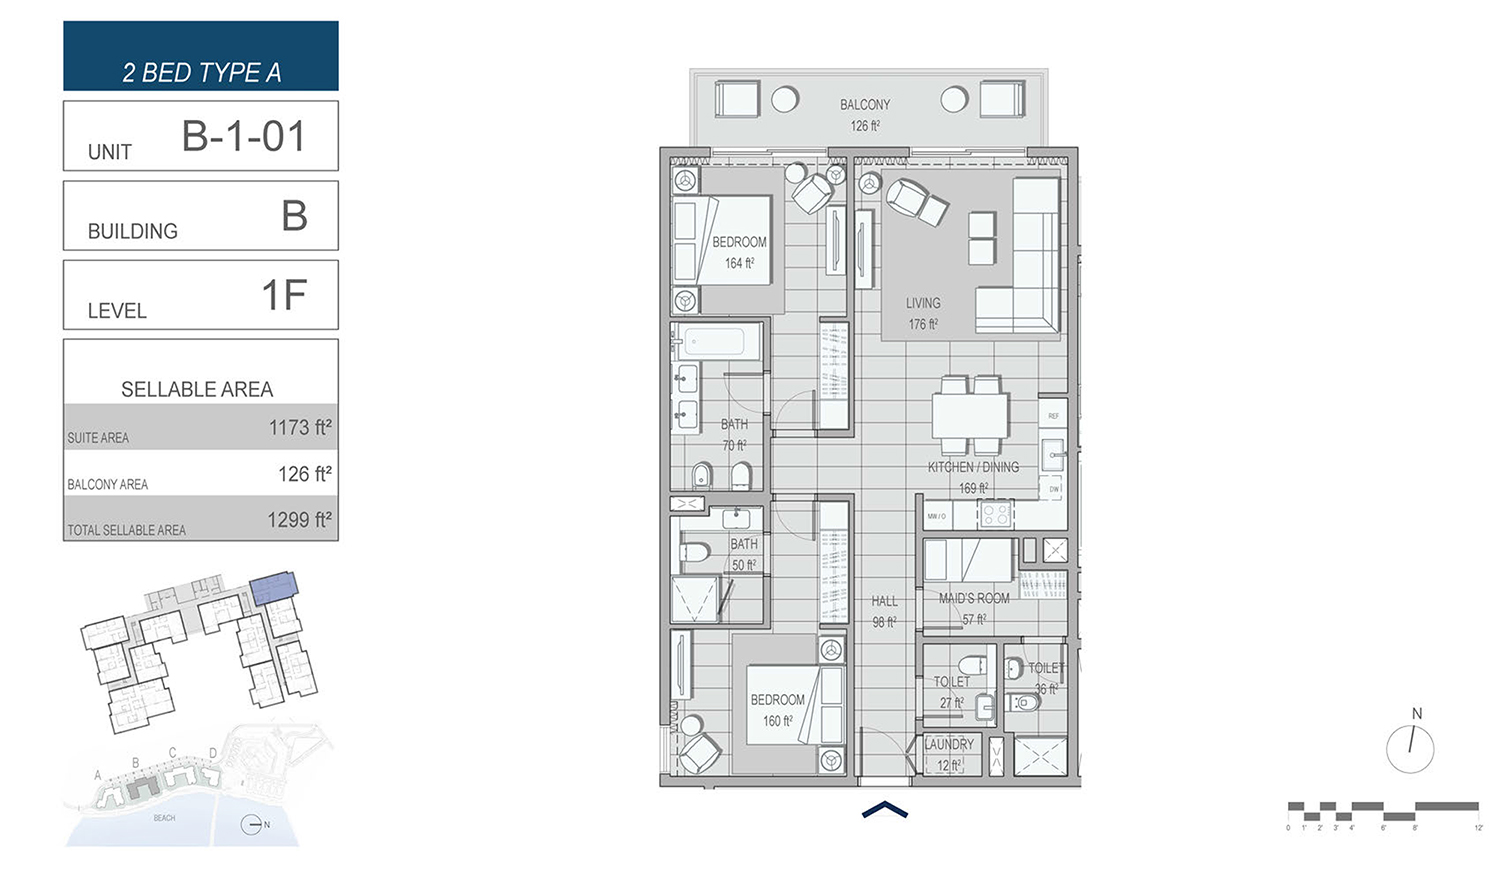 2 Bedroom Type A, Unit B-1-01, Building-B, Level 1F, Size 1299 sq.ft.